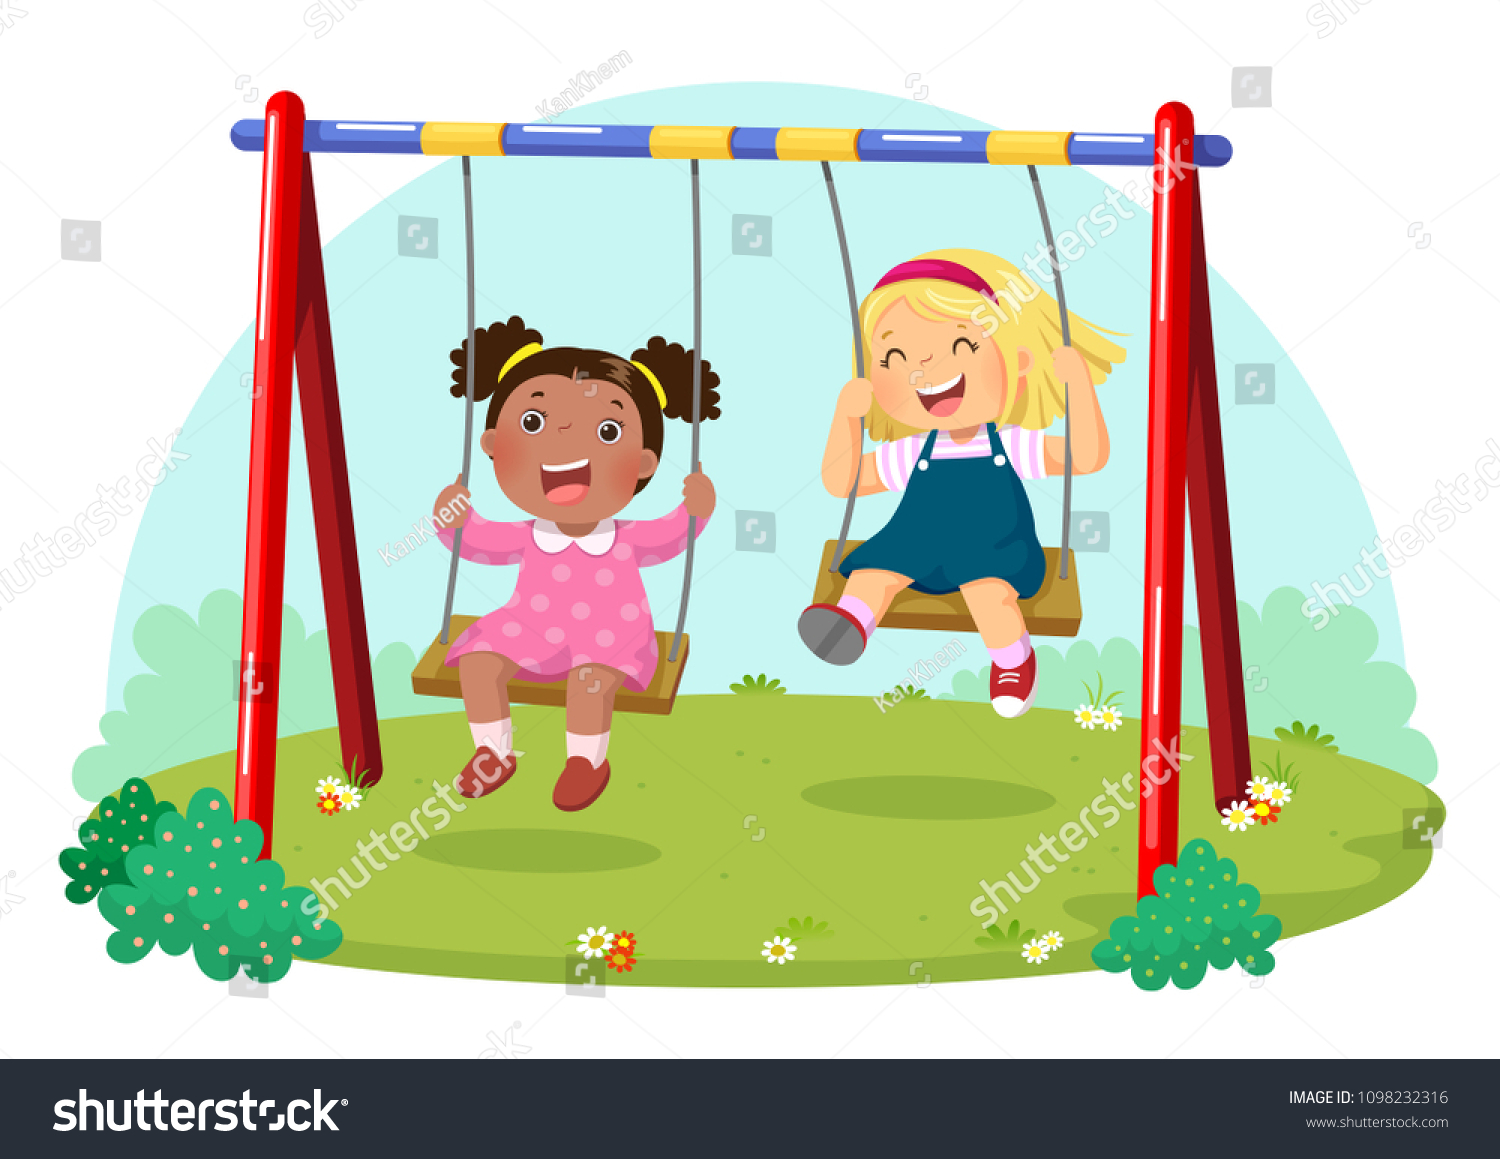 Vector illustration of cute kids having fun on swing in playground